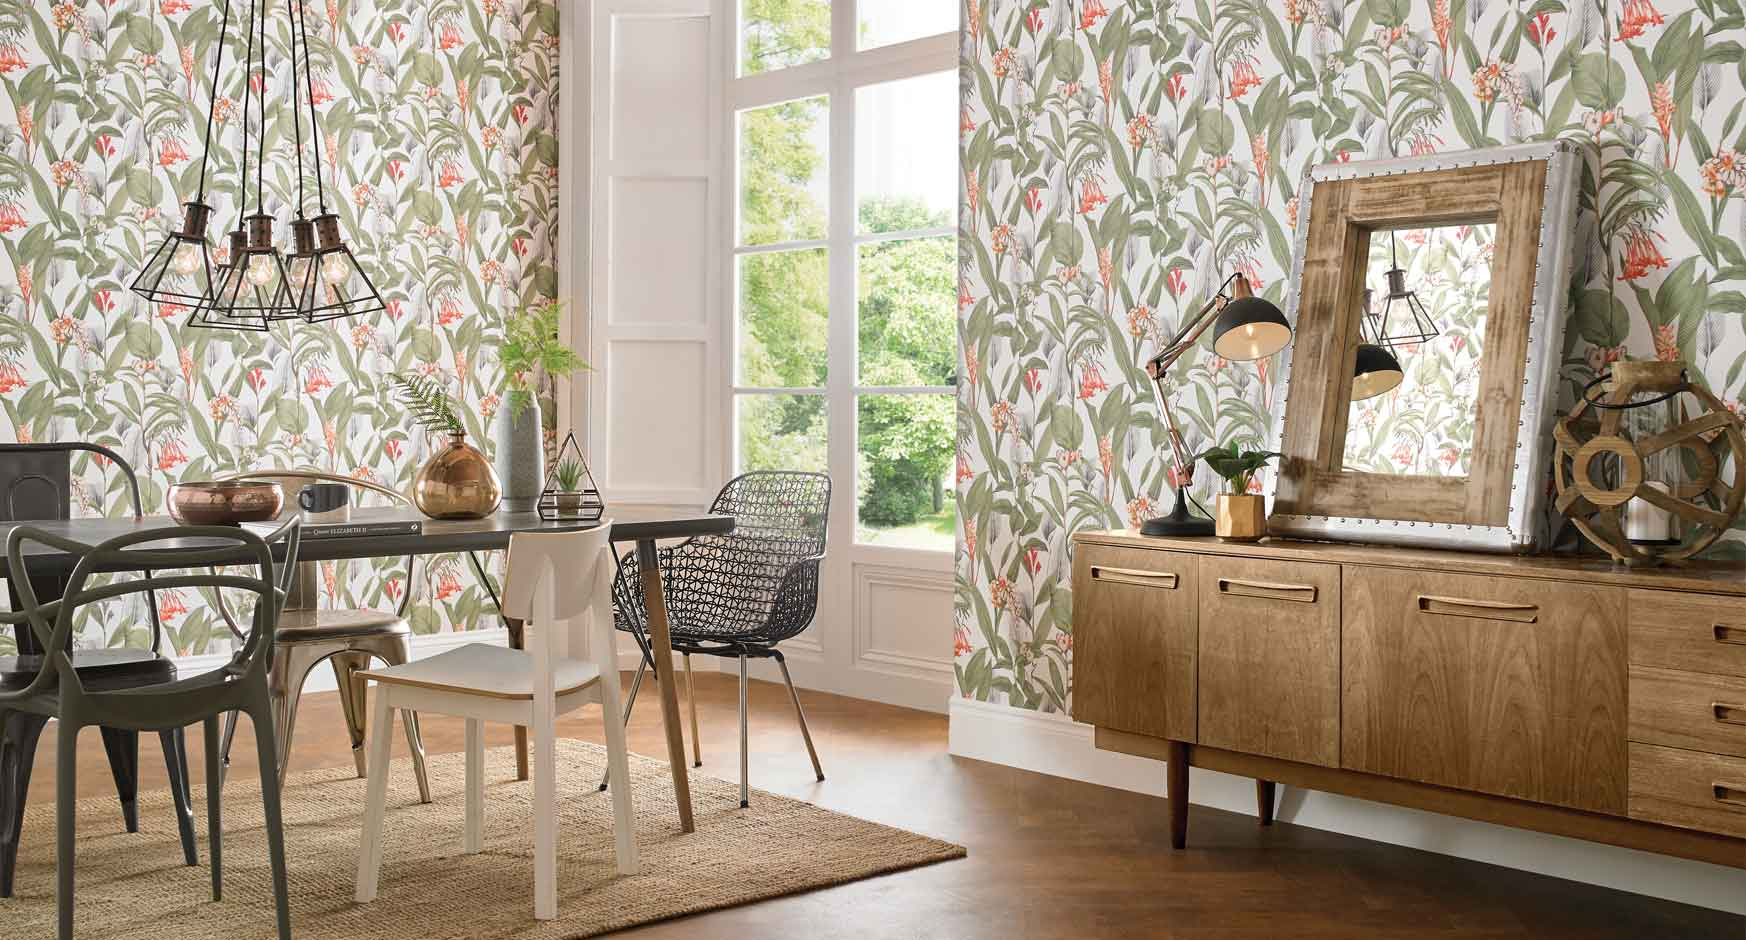 dining-room-wallpaper-dining-room-feature-wall-ideas-dining-room-wallpaper-l-82bcccc9e3f094fe